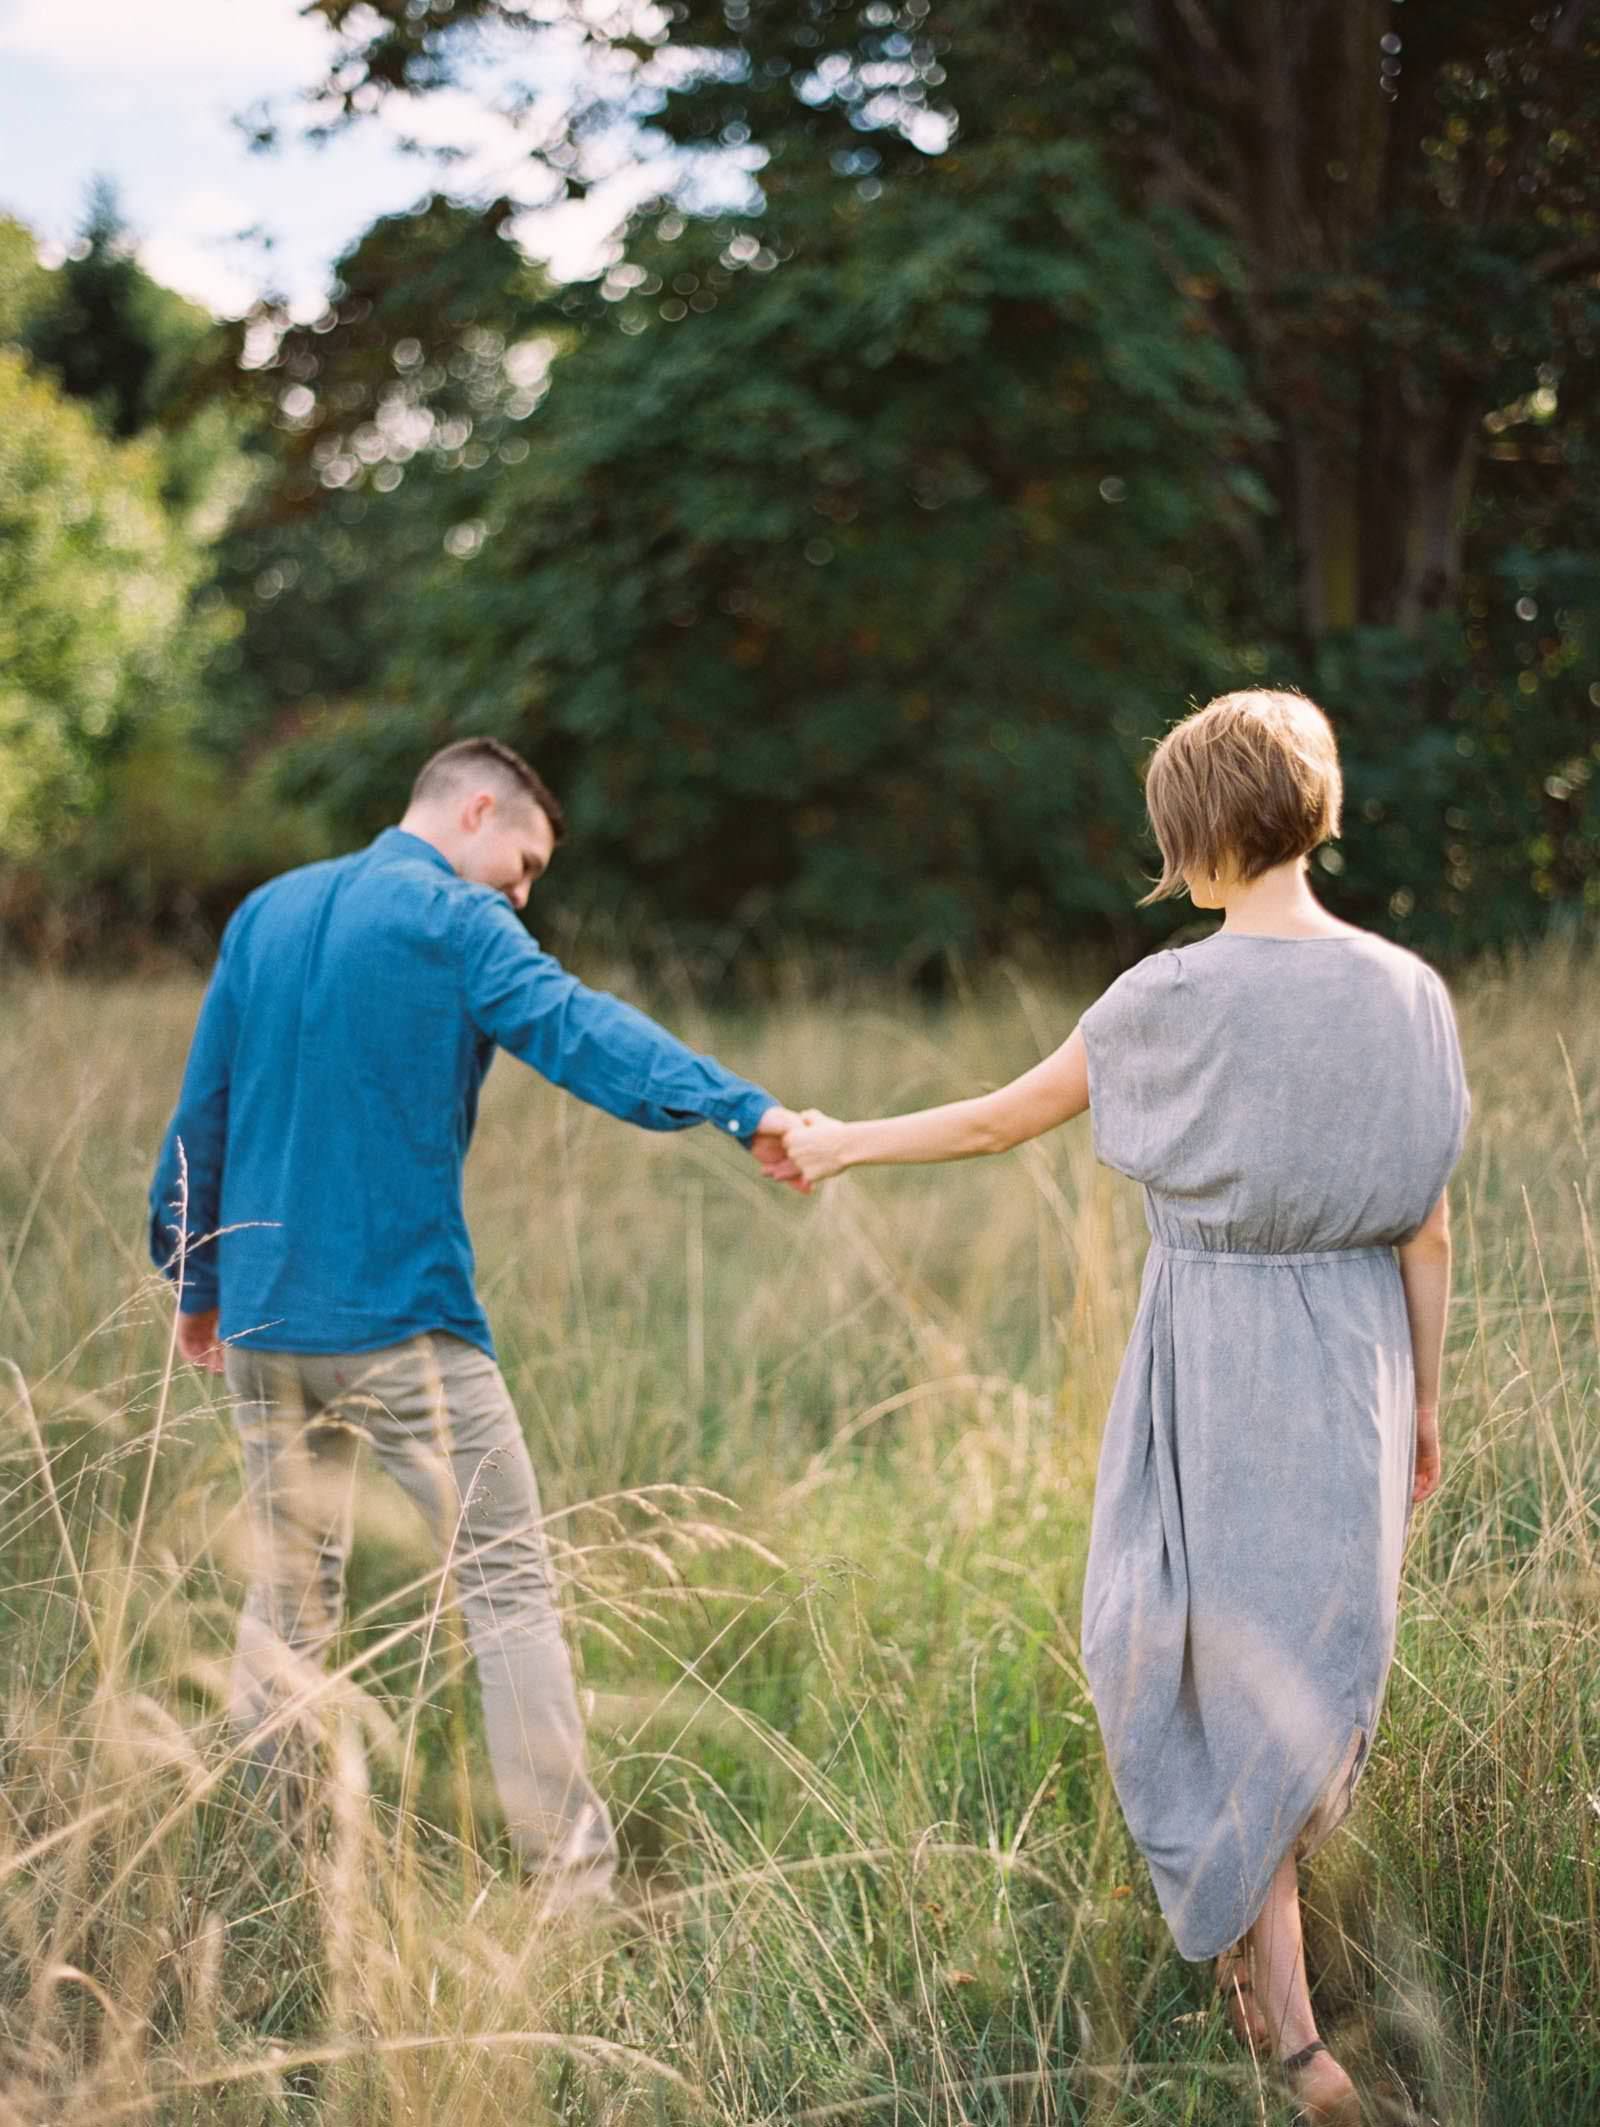 Walking through Discovery Park's fields captured by top Seattle Engagement Photographer Anna Peters